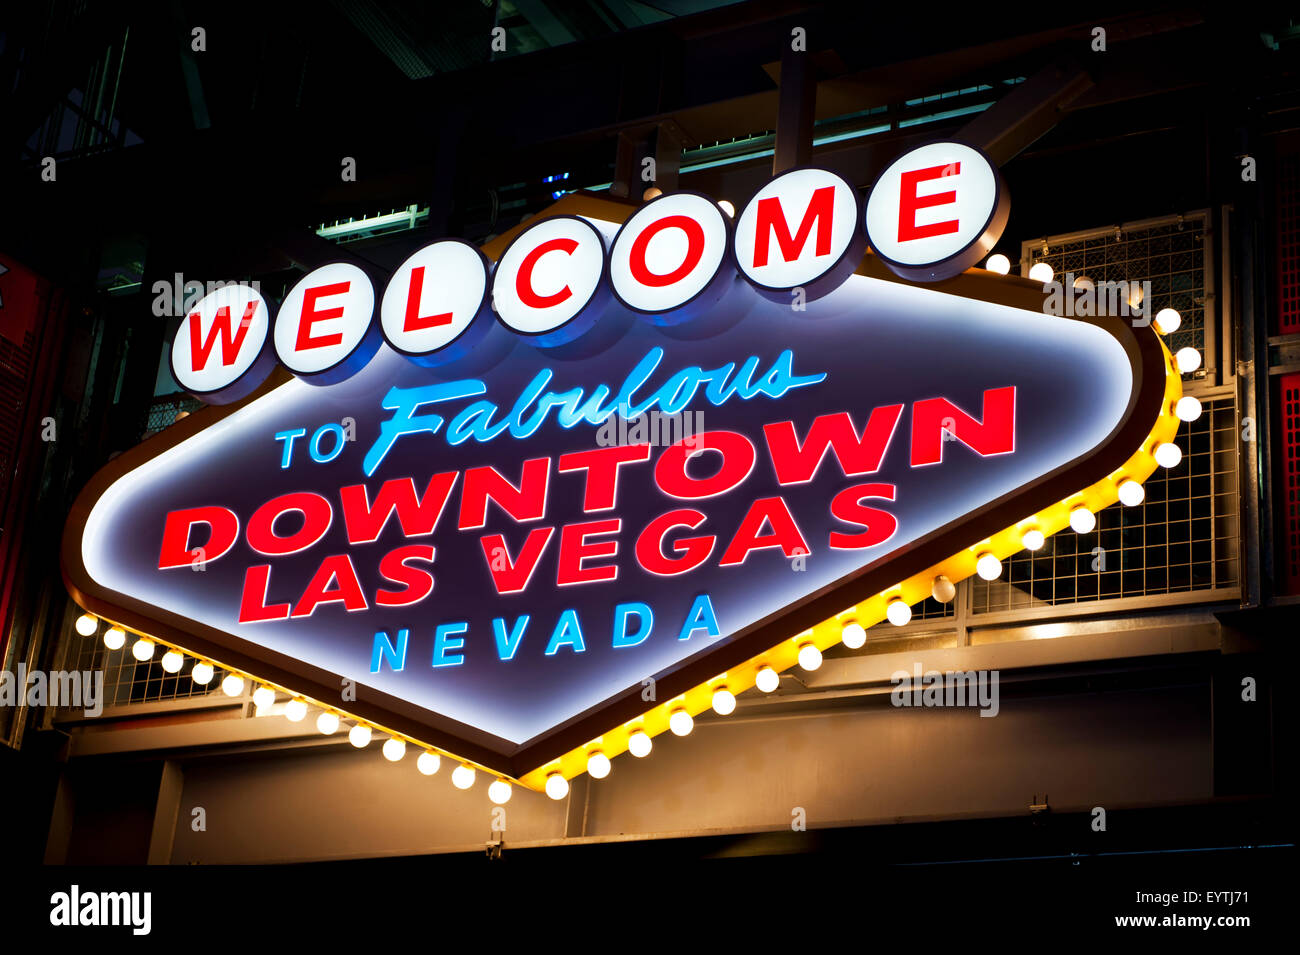 Stock footage welcome to fabulous las vegas sign with flashing lights - Welcome To Fabulous Downtown Las Vegas Sign Fremont Street Las Vegas Nevada